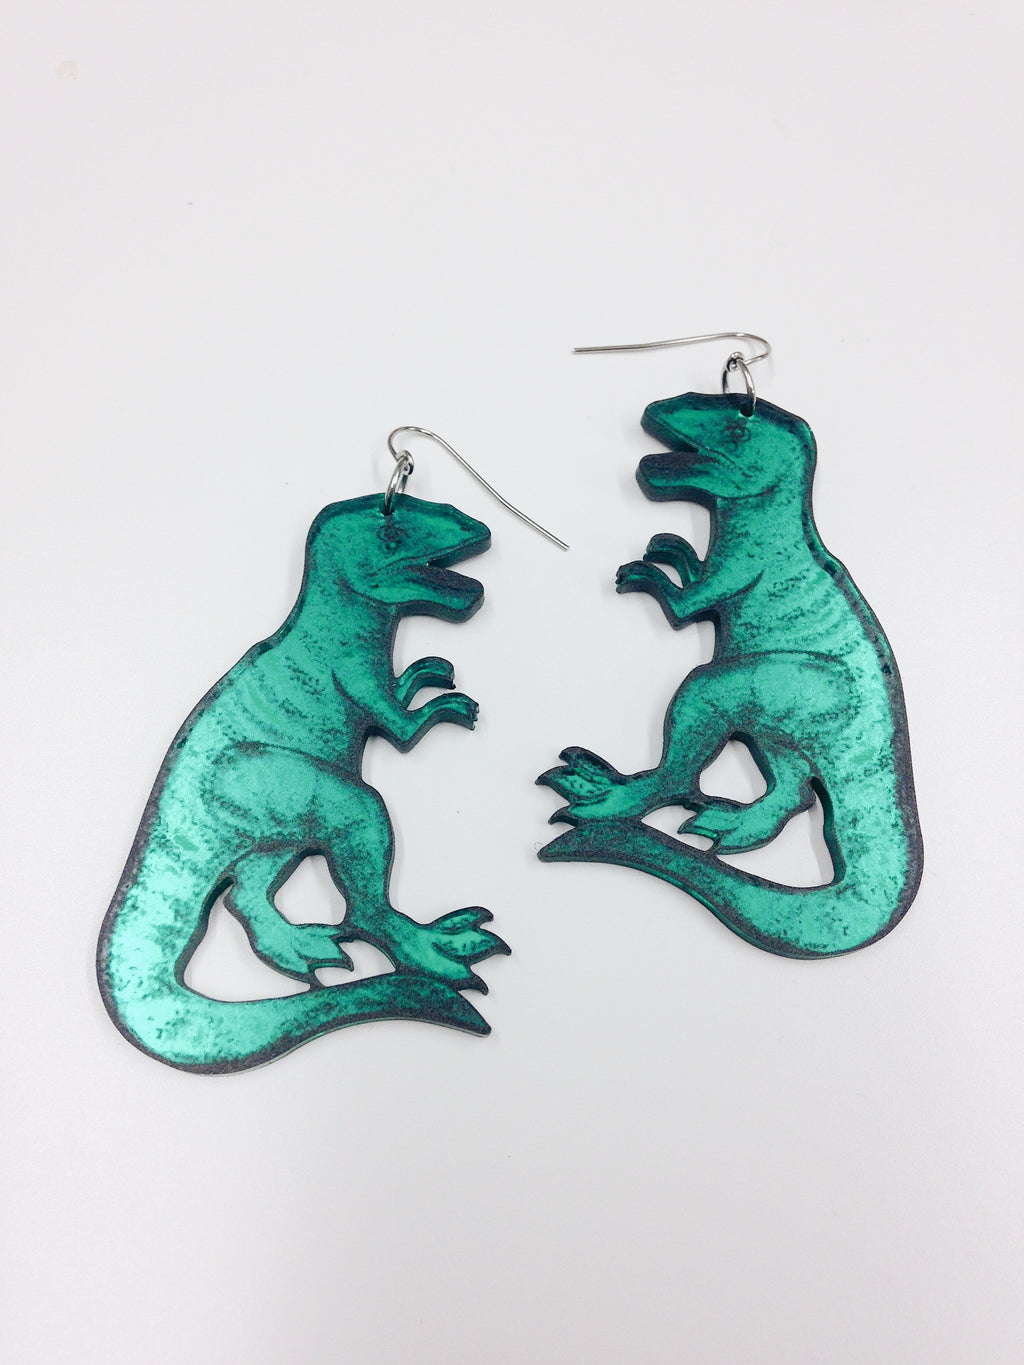 T-Rex Earrings, Green Mirror